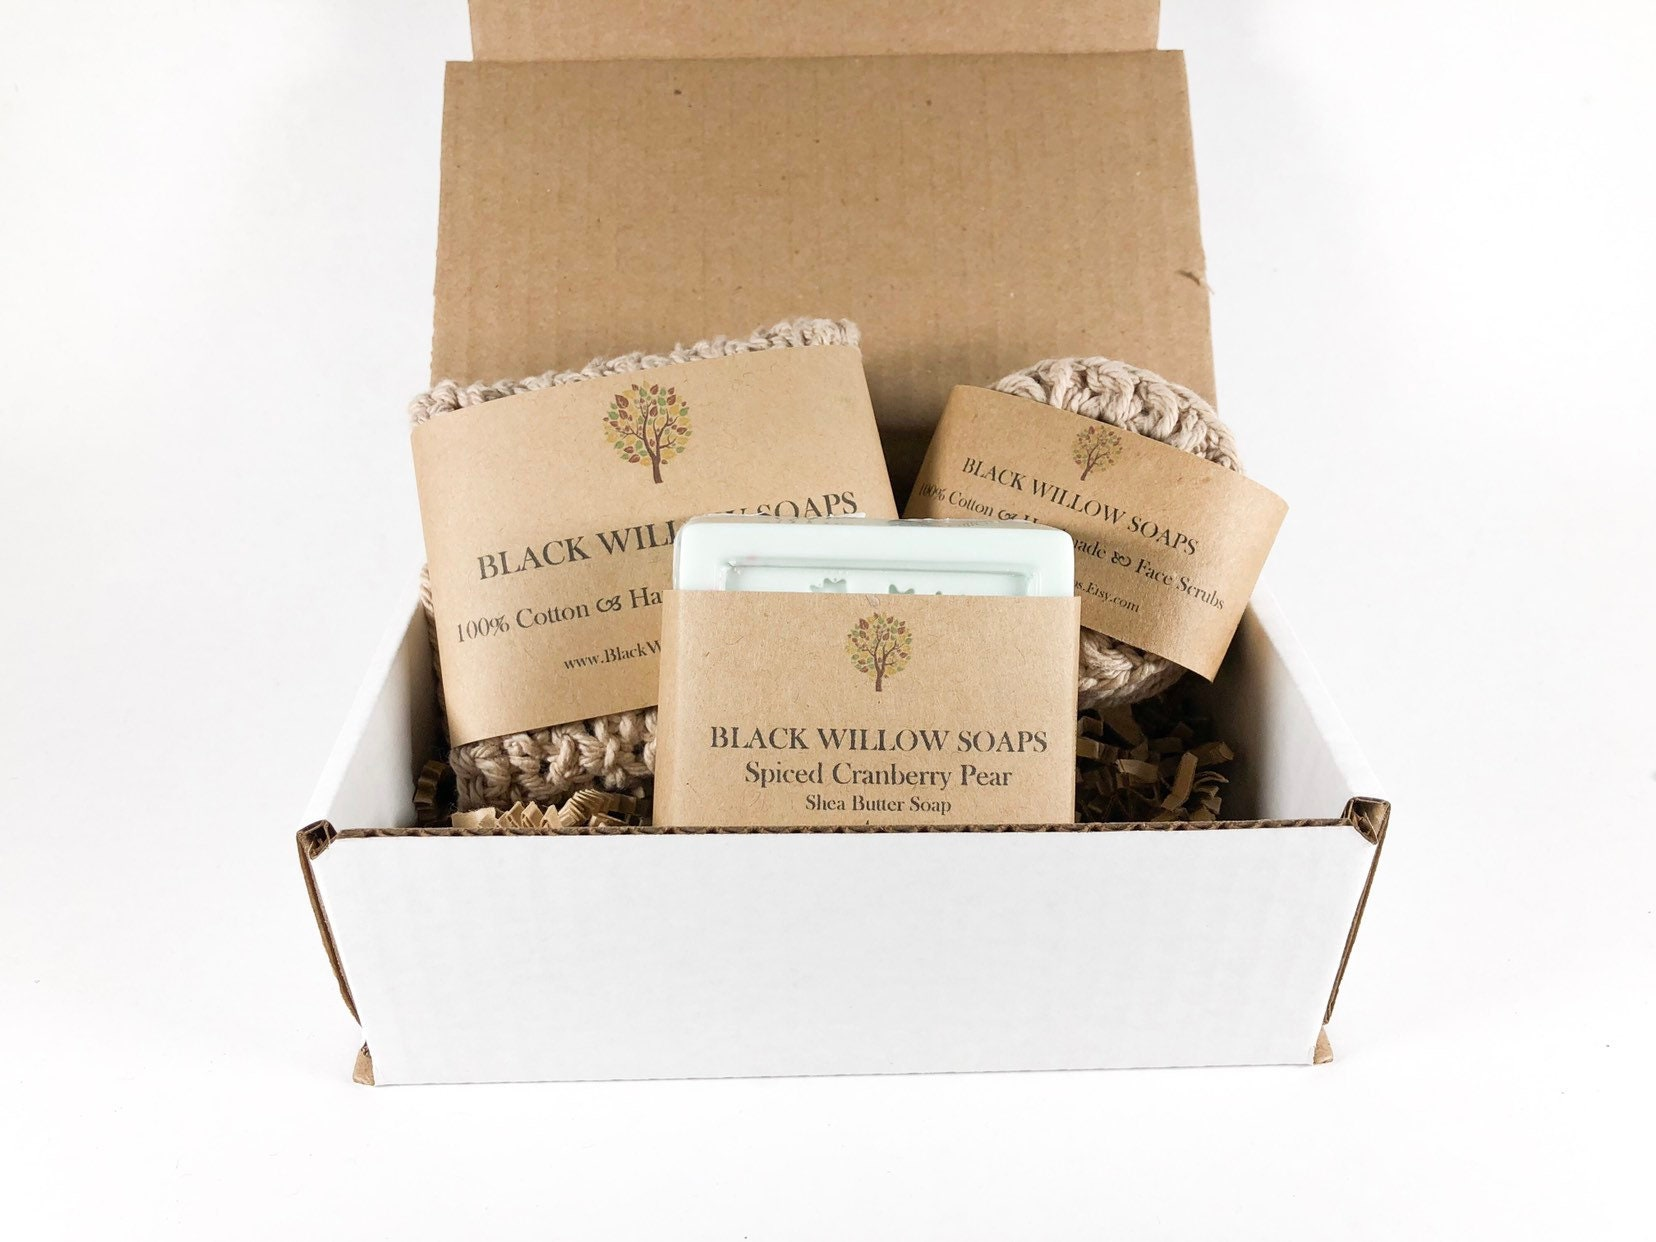 Spiced Cranberry Pear Soap Bath Set | Spa Bath Gift | Spa Kit for Women |  Thanksgiving Guest Gifts | Stocking Stuffers | Wife Gift